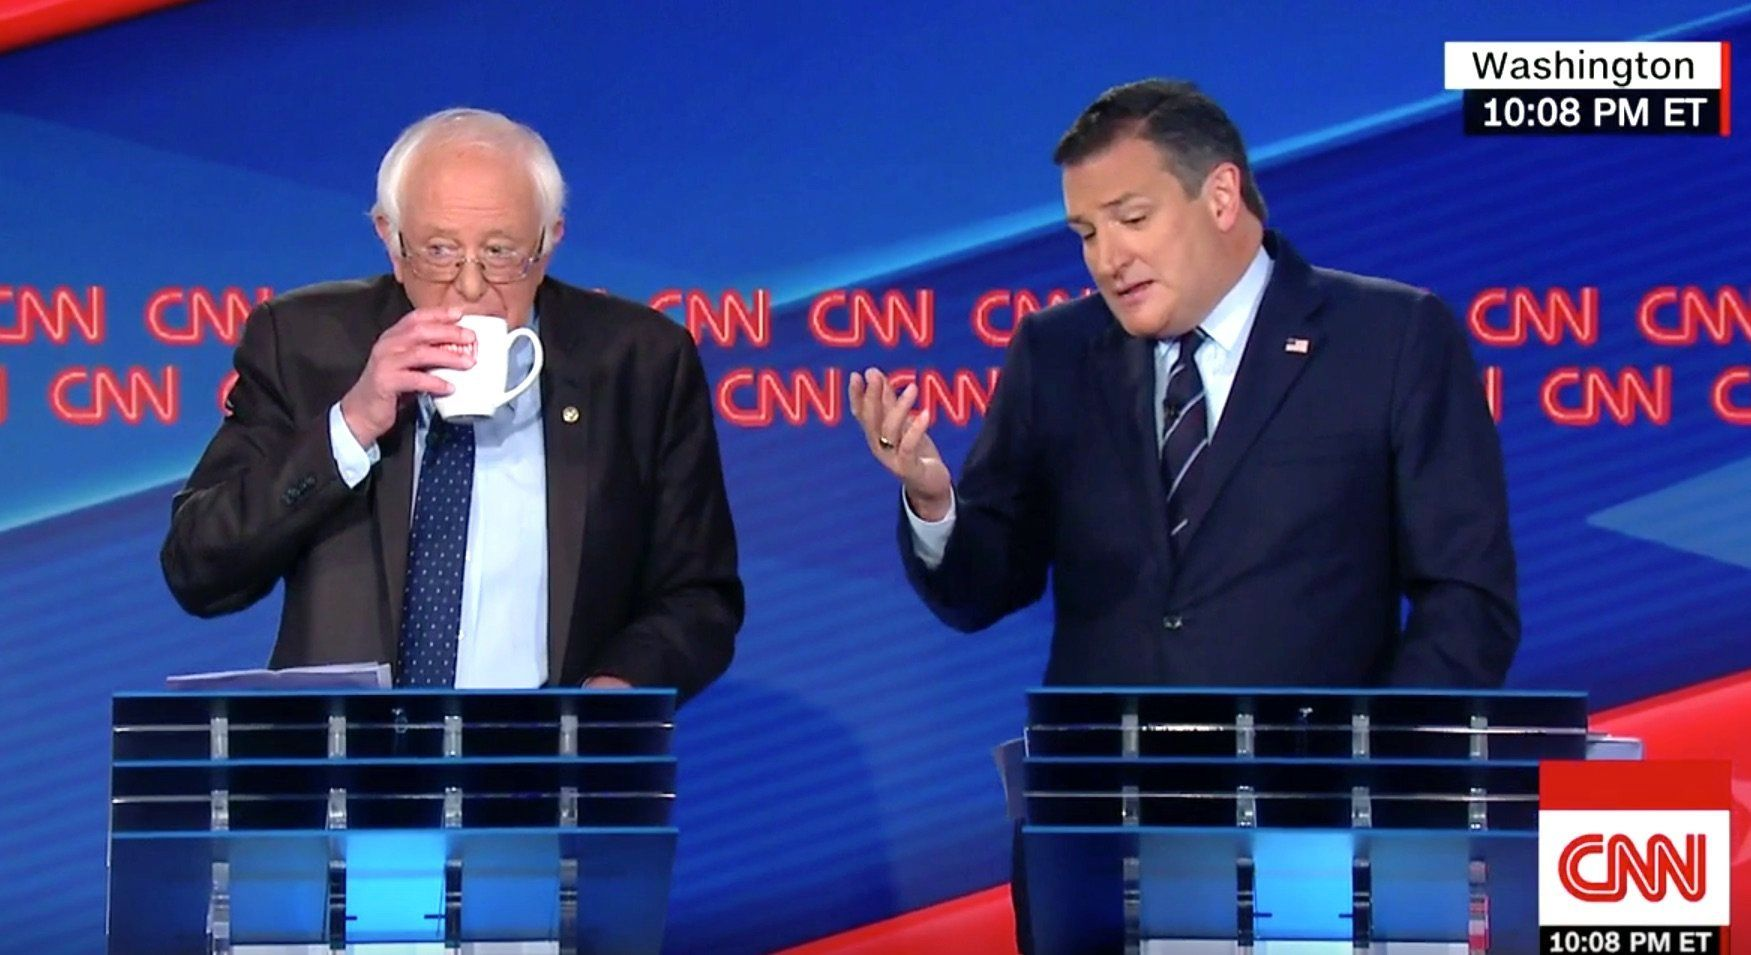 Bernie Sanders and Ted Cruz